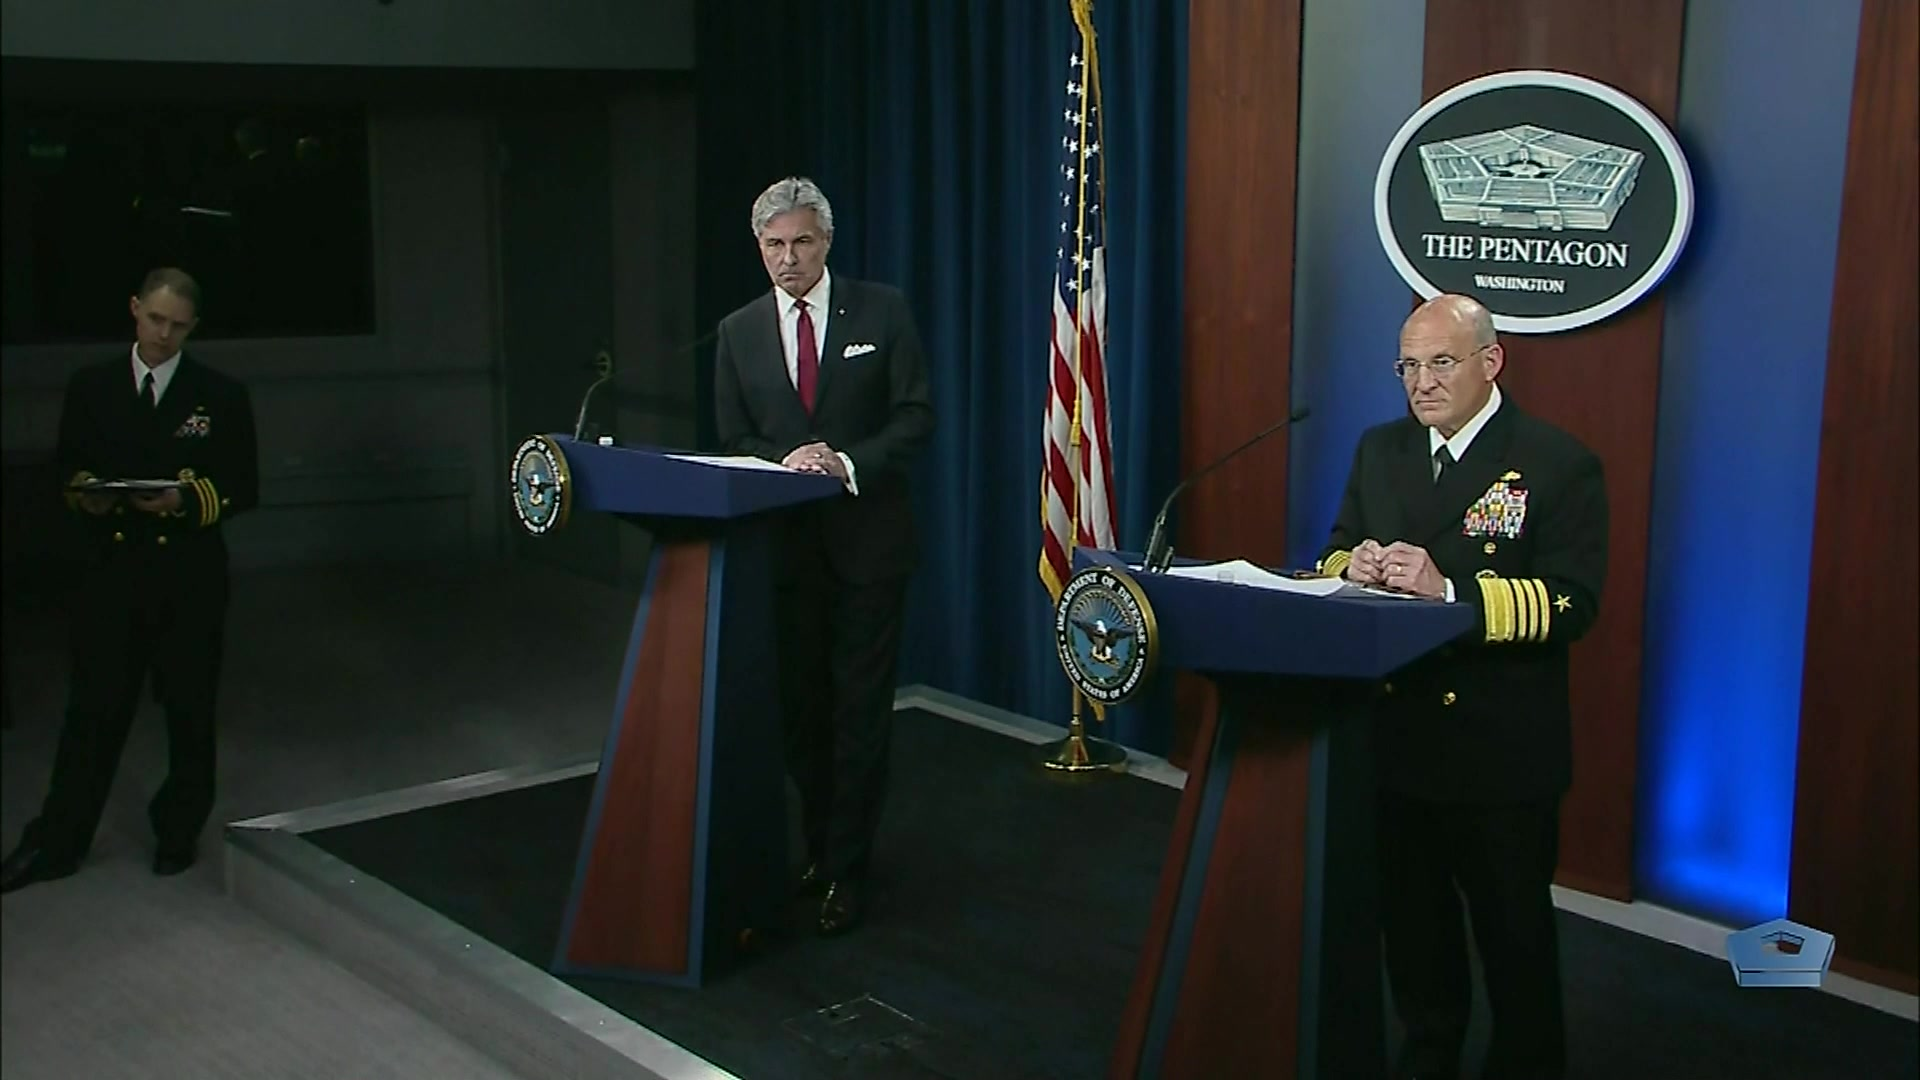 A civilian and a Navy admiral stand at lecterns.